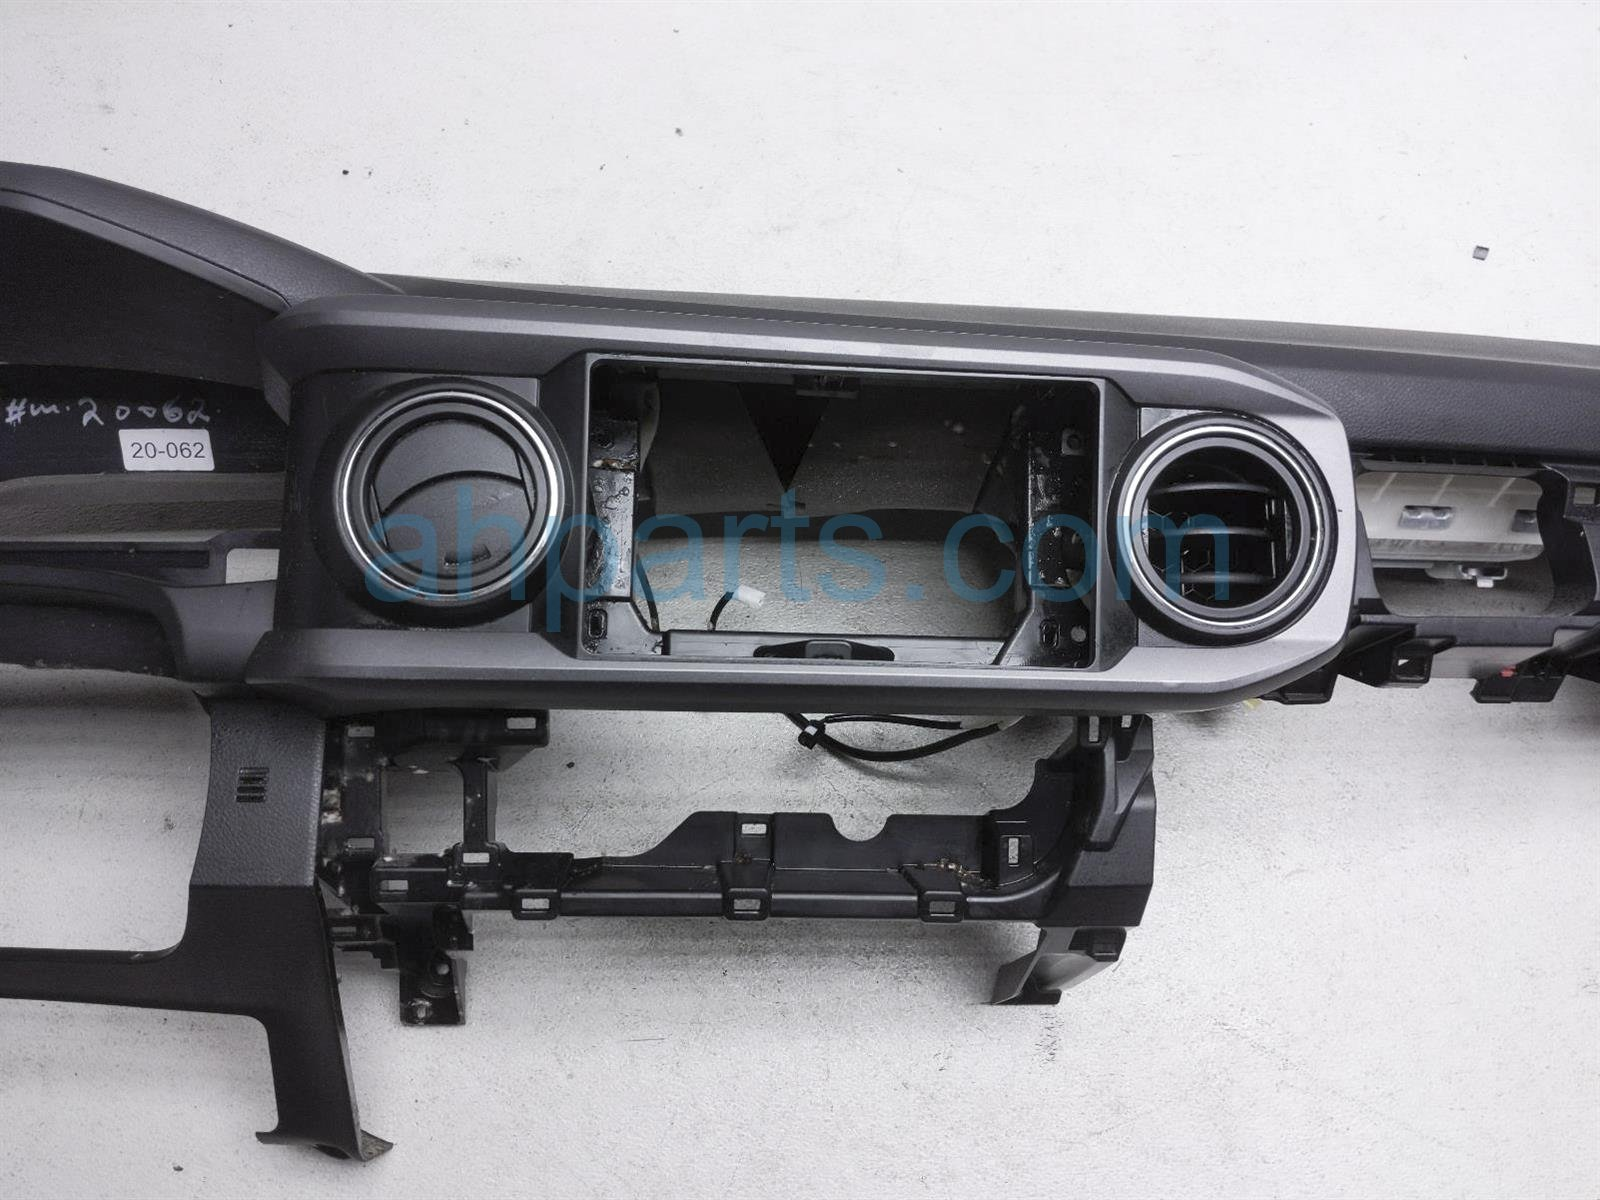 2017 Toyota Tacoma Dashboard W/ Airbag Black 55301 04080 C0 Replacement